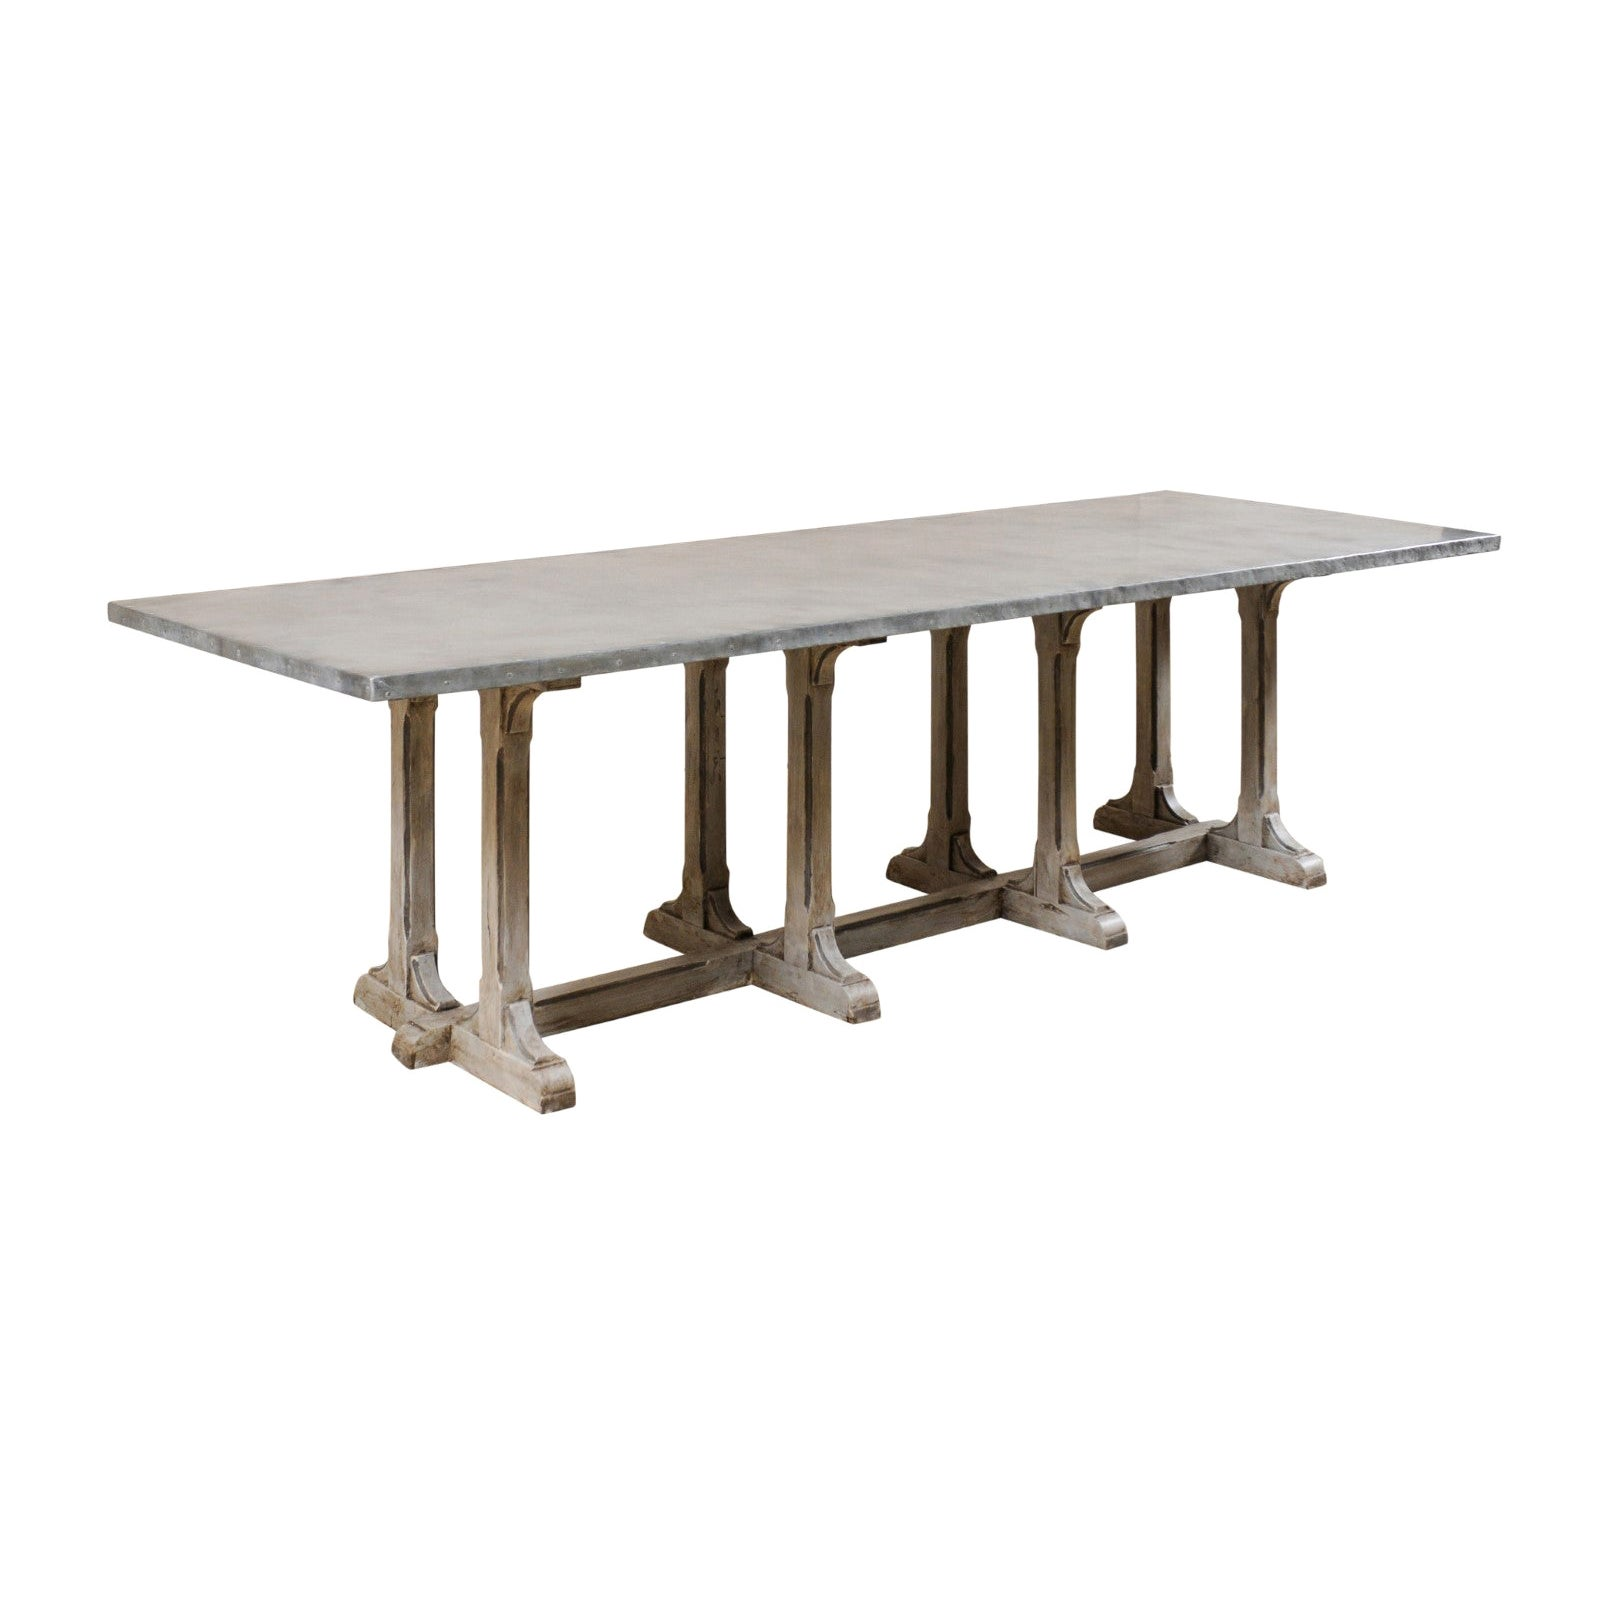 Vintage Trestle Dining Table with Custom Zinc Top